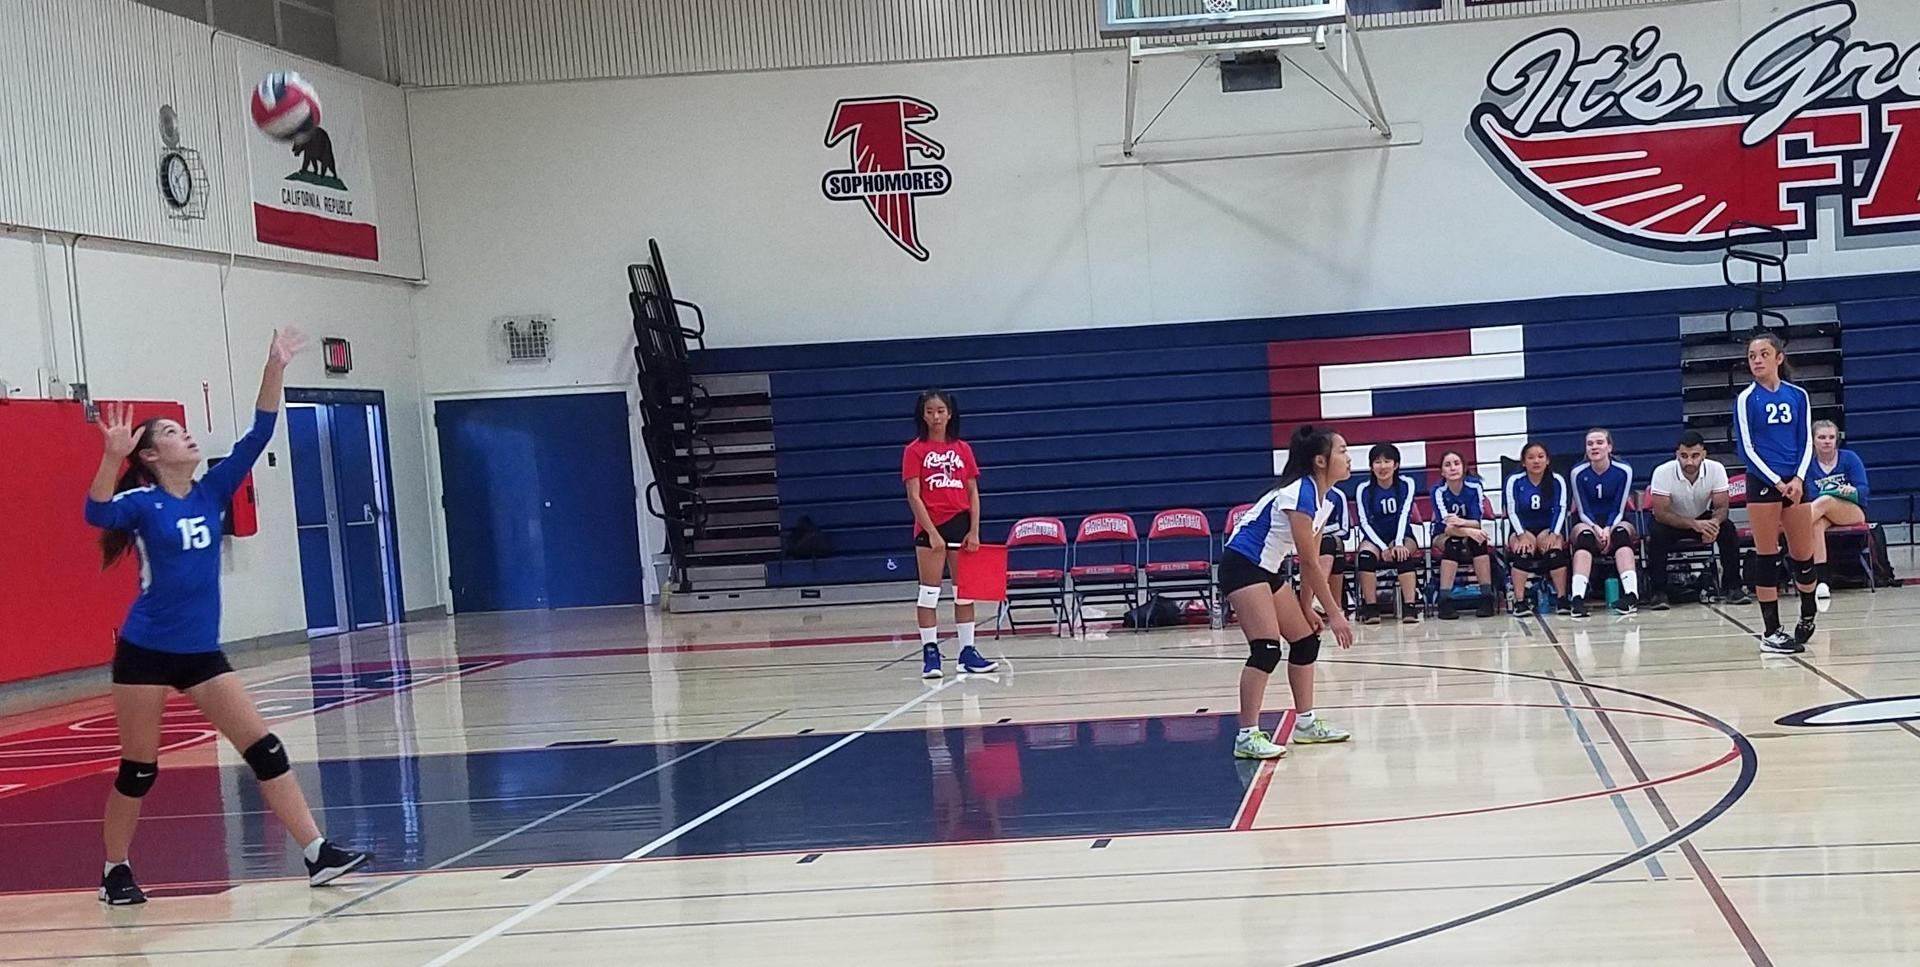 Girls volleyball at Saratoga